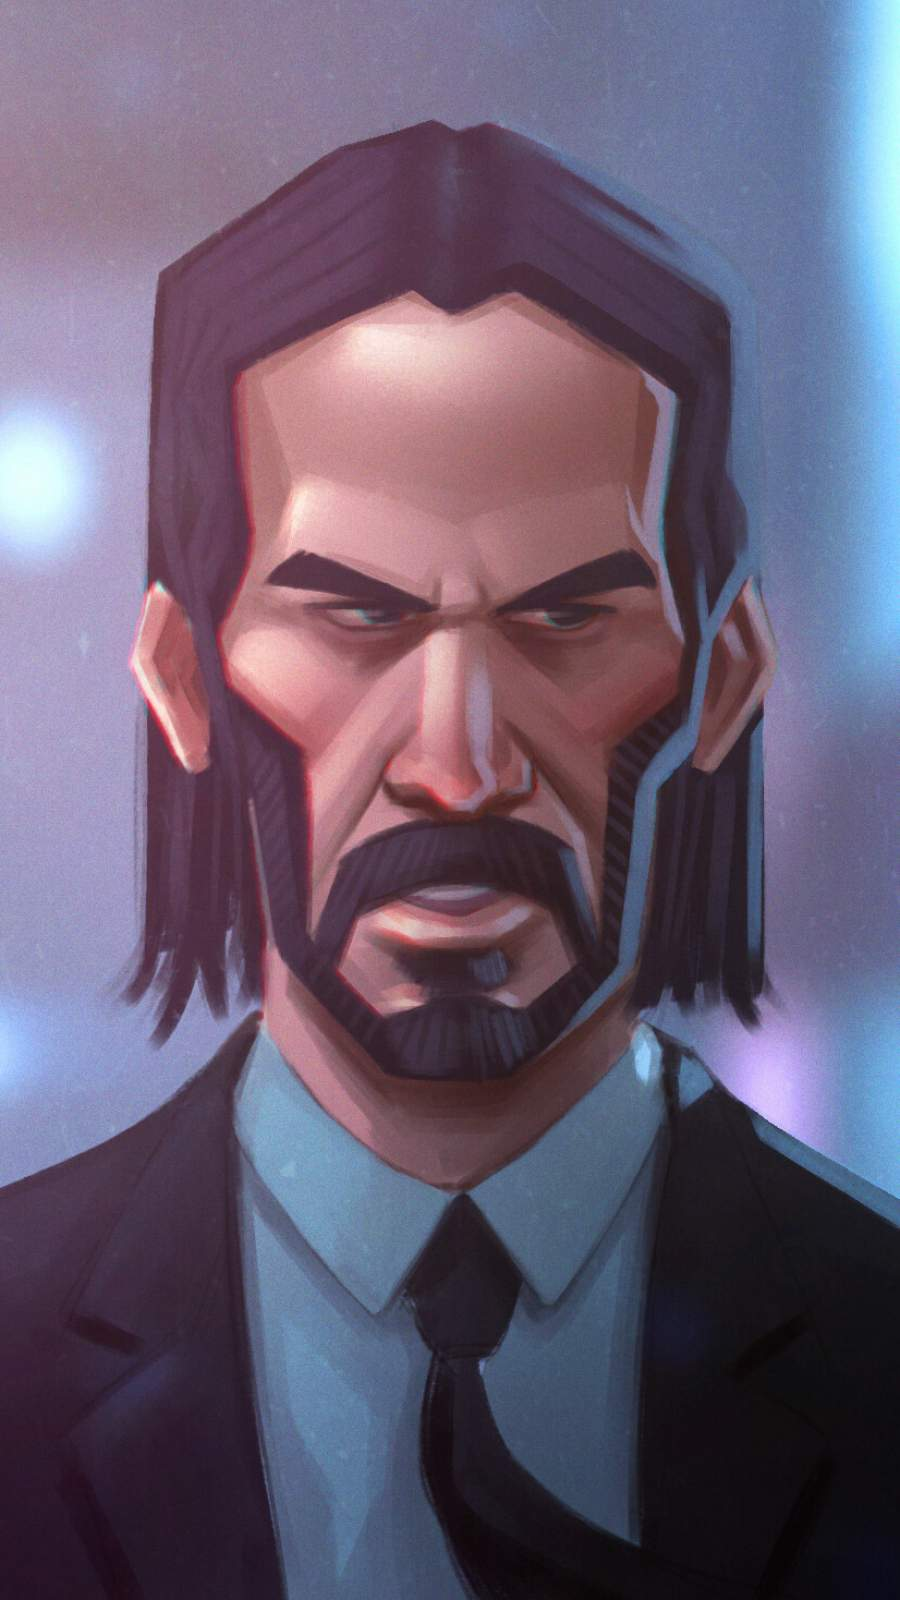 John Wick Face iPhone Wallpaper